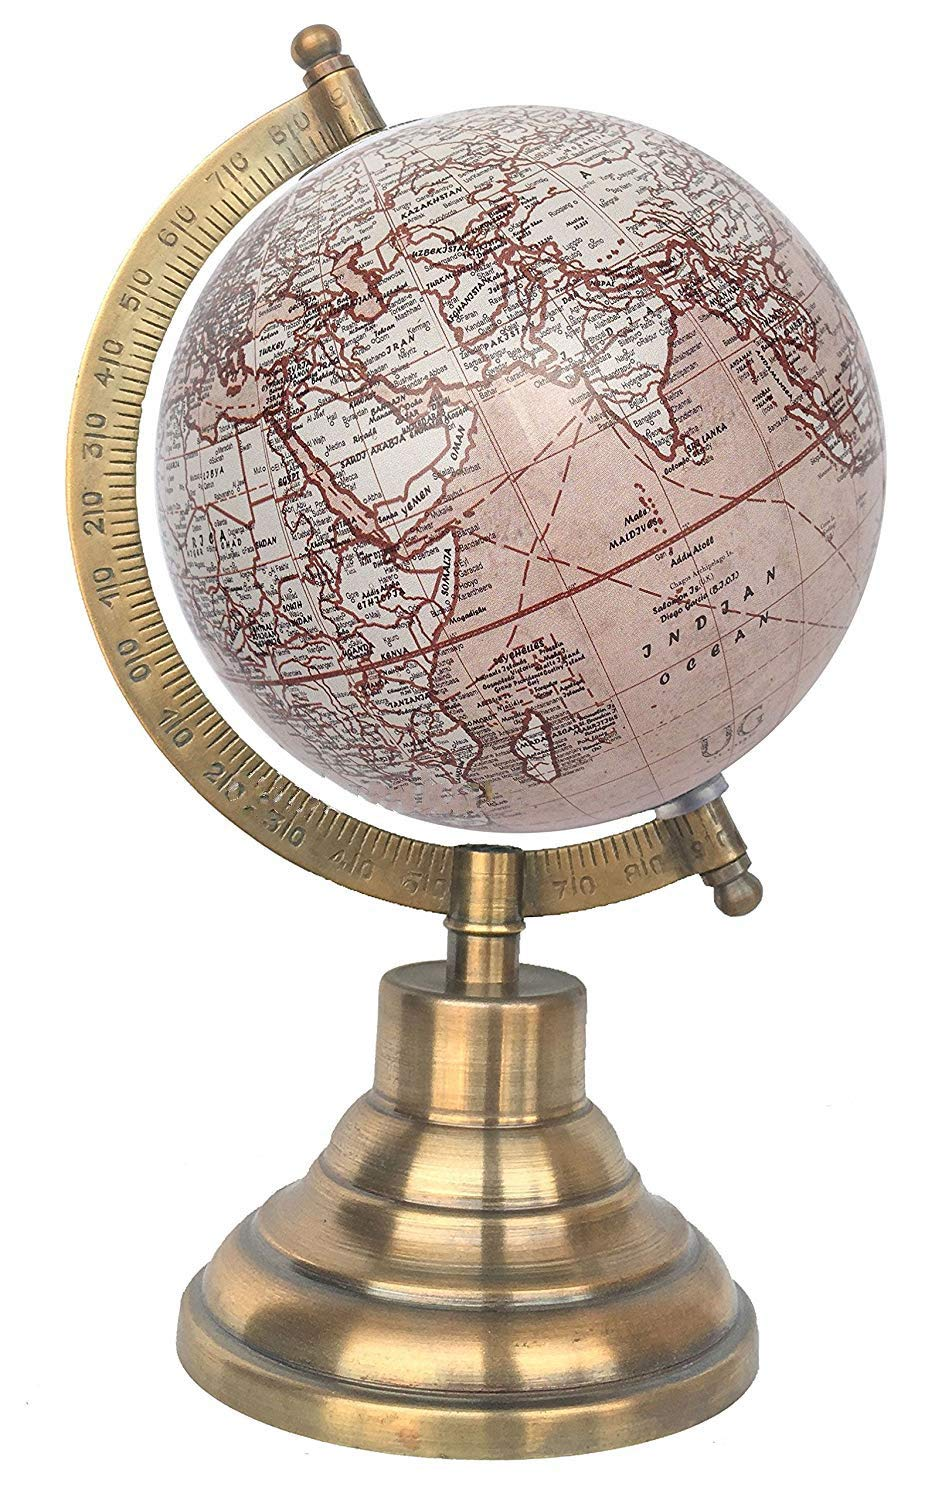 World Globe Office Decor Home Decor Gift Item by Globes Hub Antique Globe with Brass Antique Arc and Base 5 Cream Red Multicolour Educational